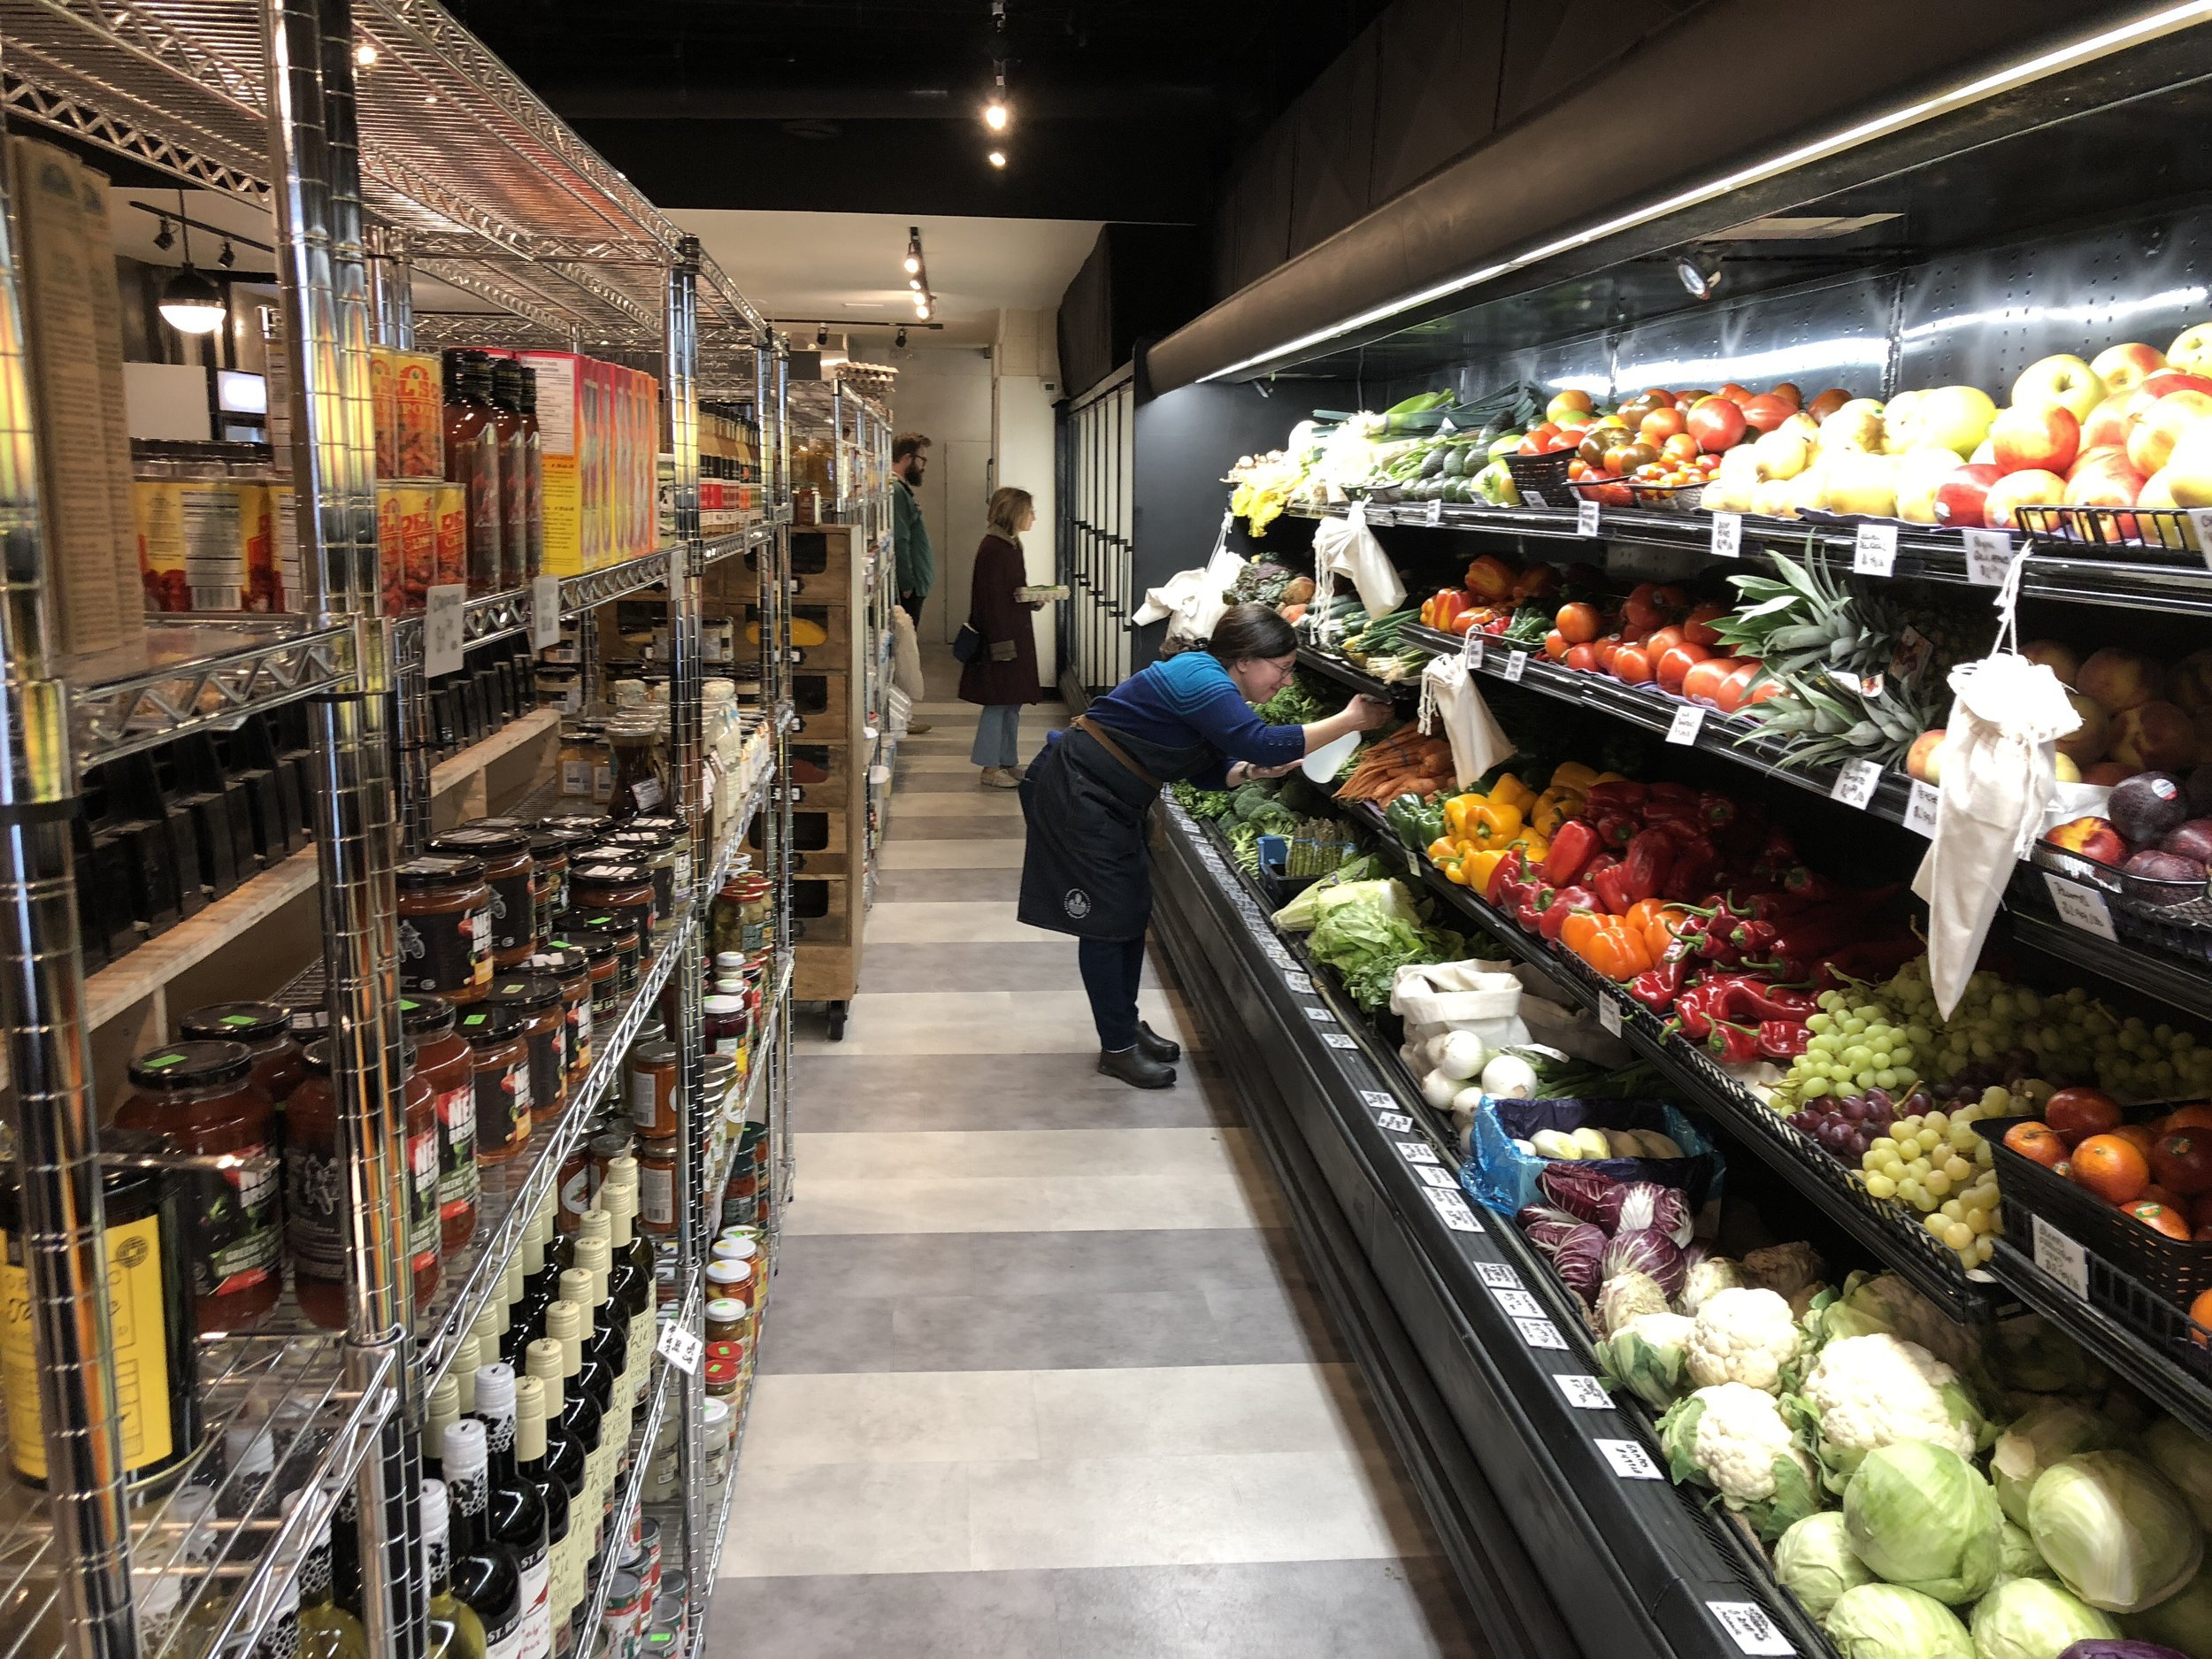 All produce at Unboxed Market are locally sourced and are not plastic sealed, making for no plastic waste. (CanCulture/Sophie Chong)